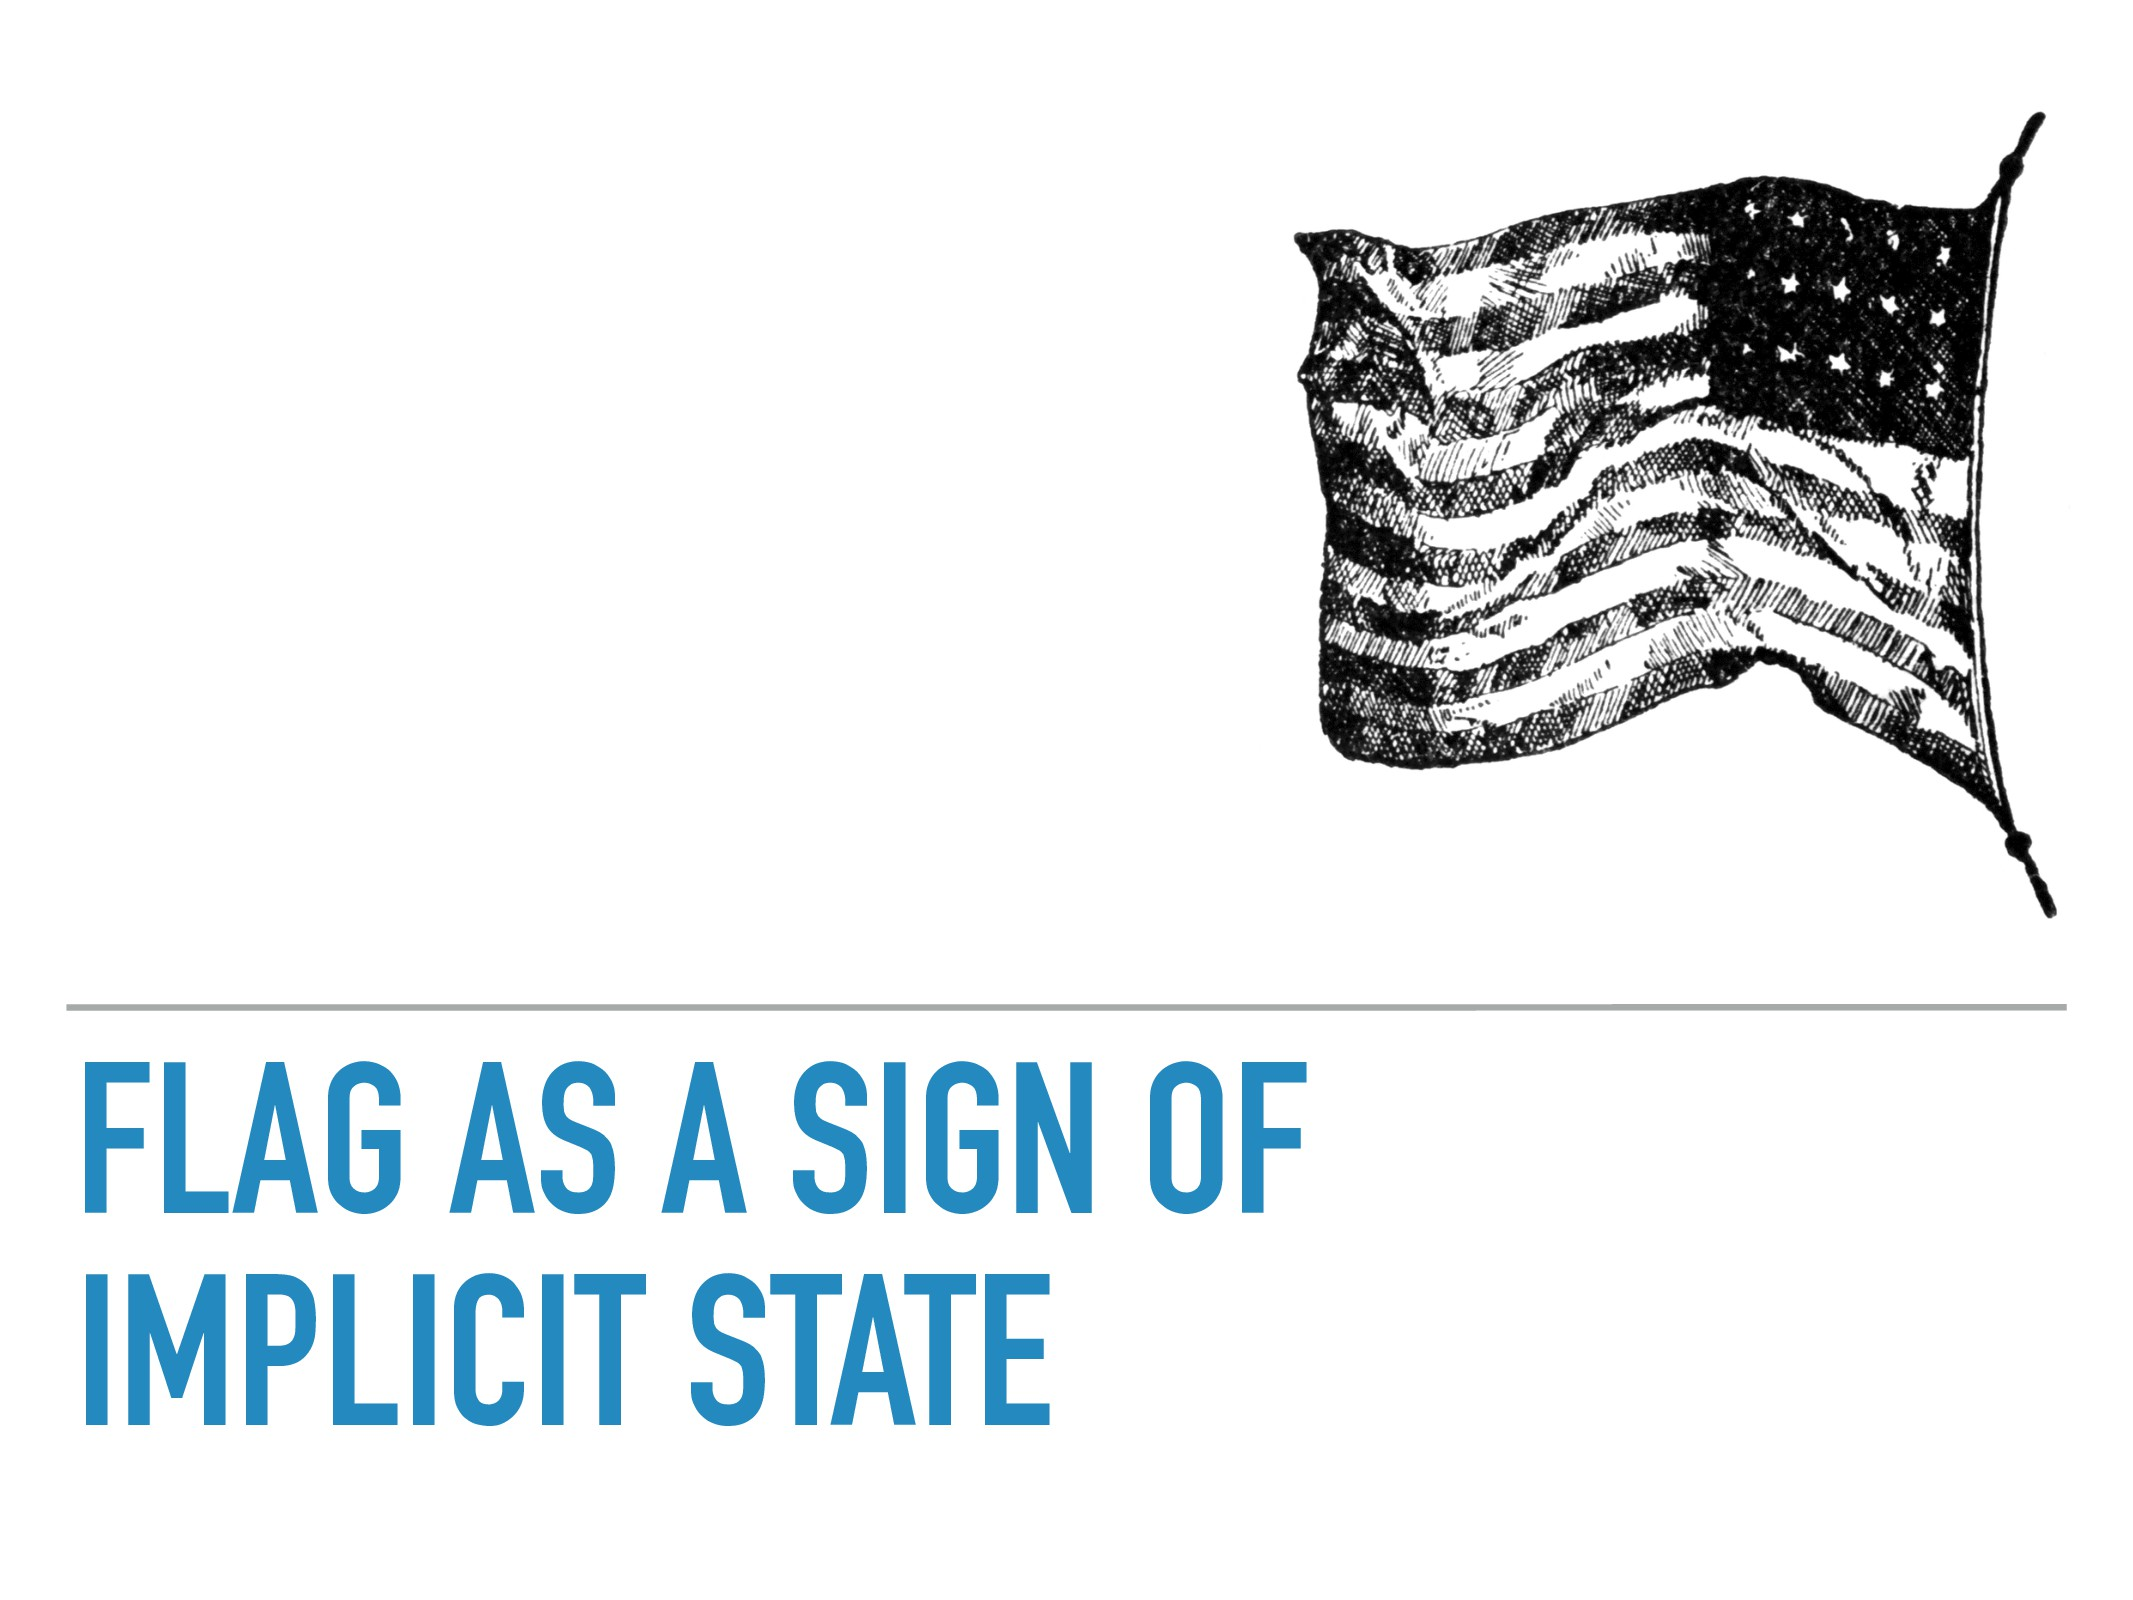 FLAG AS A SIGN OF IMPLICIT STATE